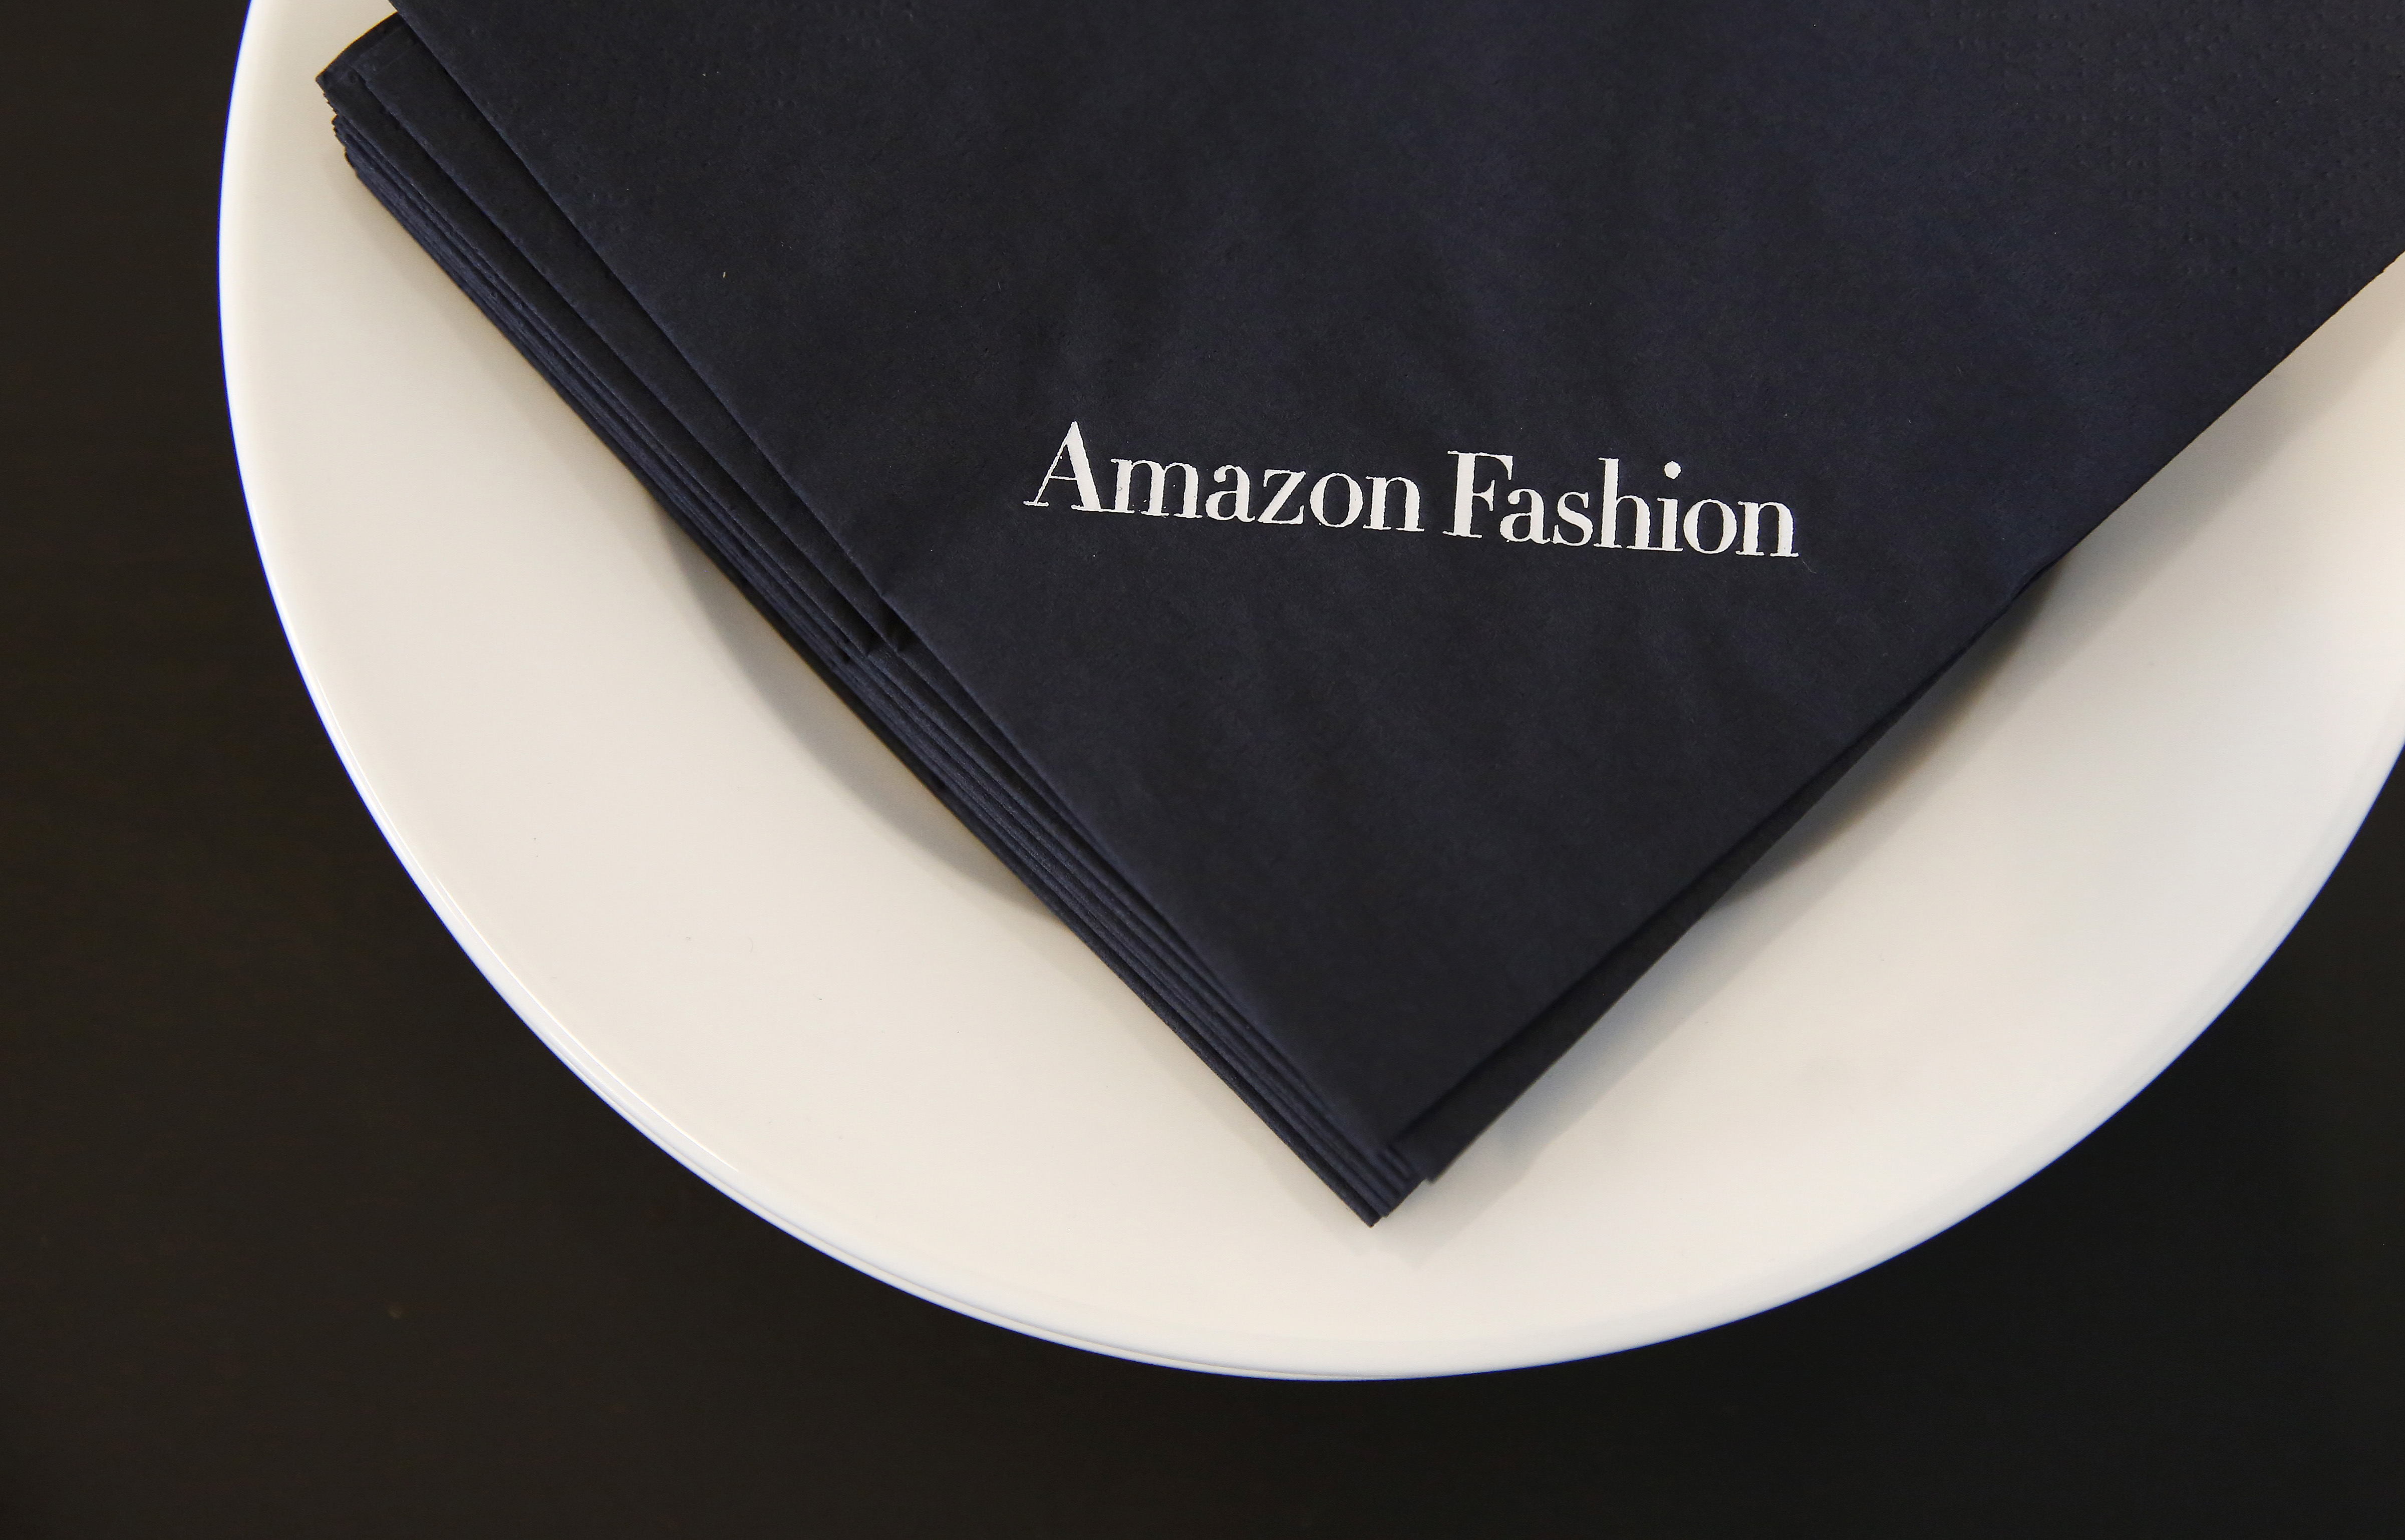 Amazon will open a pop-up clothing boutique in London, with a different theme each day